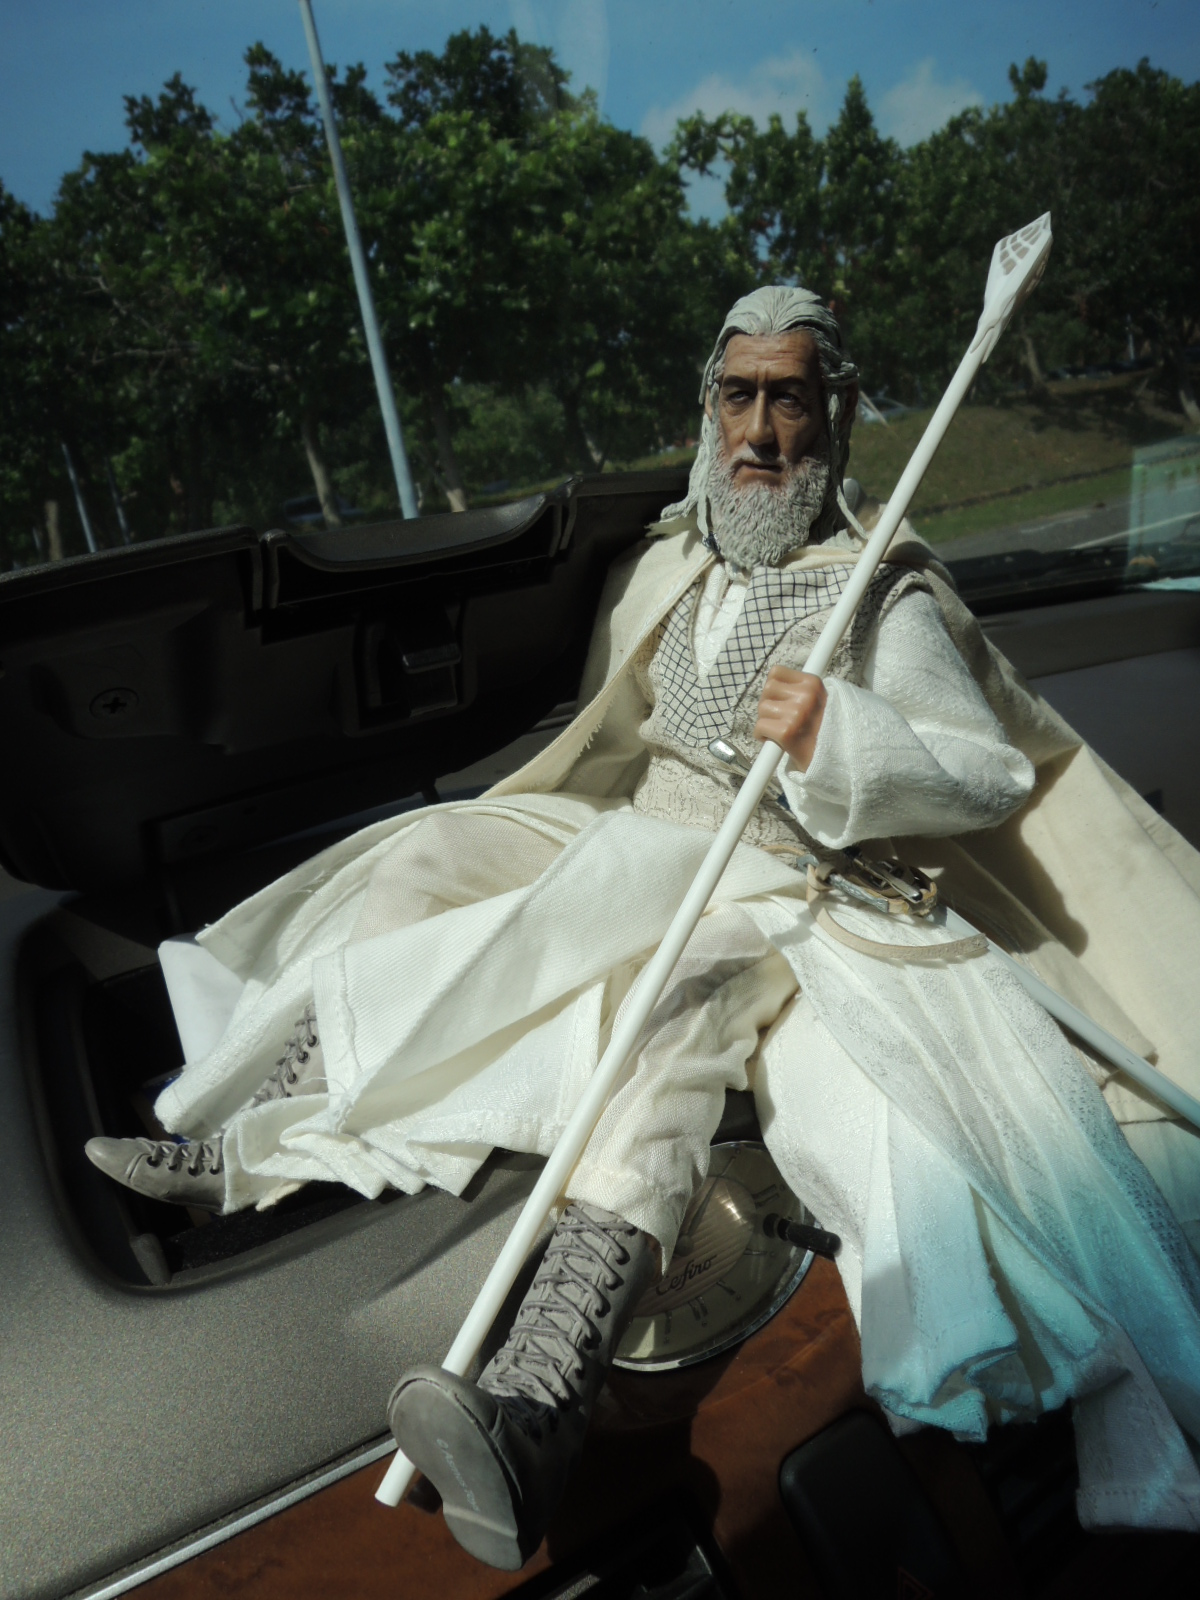 [Asmus Toys] The Lord of the Rings 1/6 scale - Gandalf - Página 5 Attachment